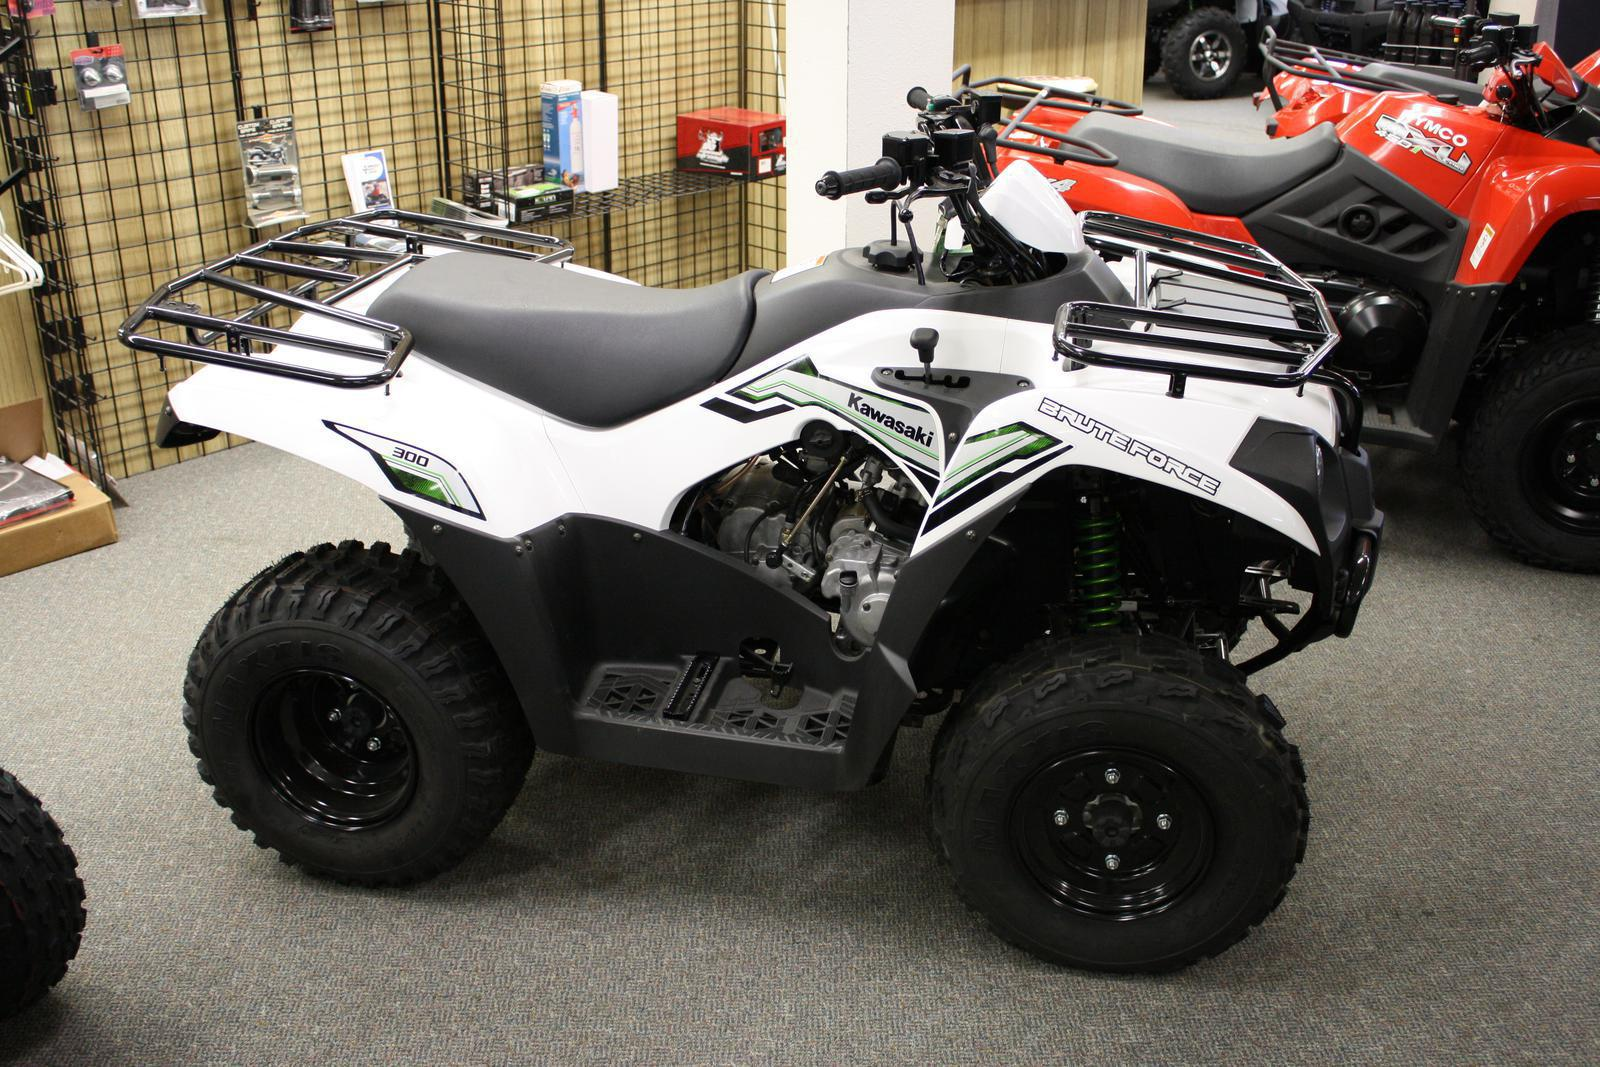 2015 kawasaki brute force 300 for sale in holdrege, ne | kaufman